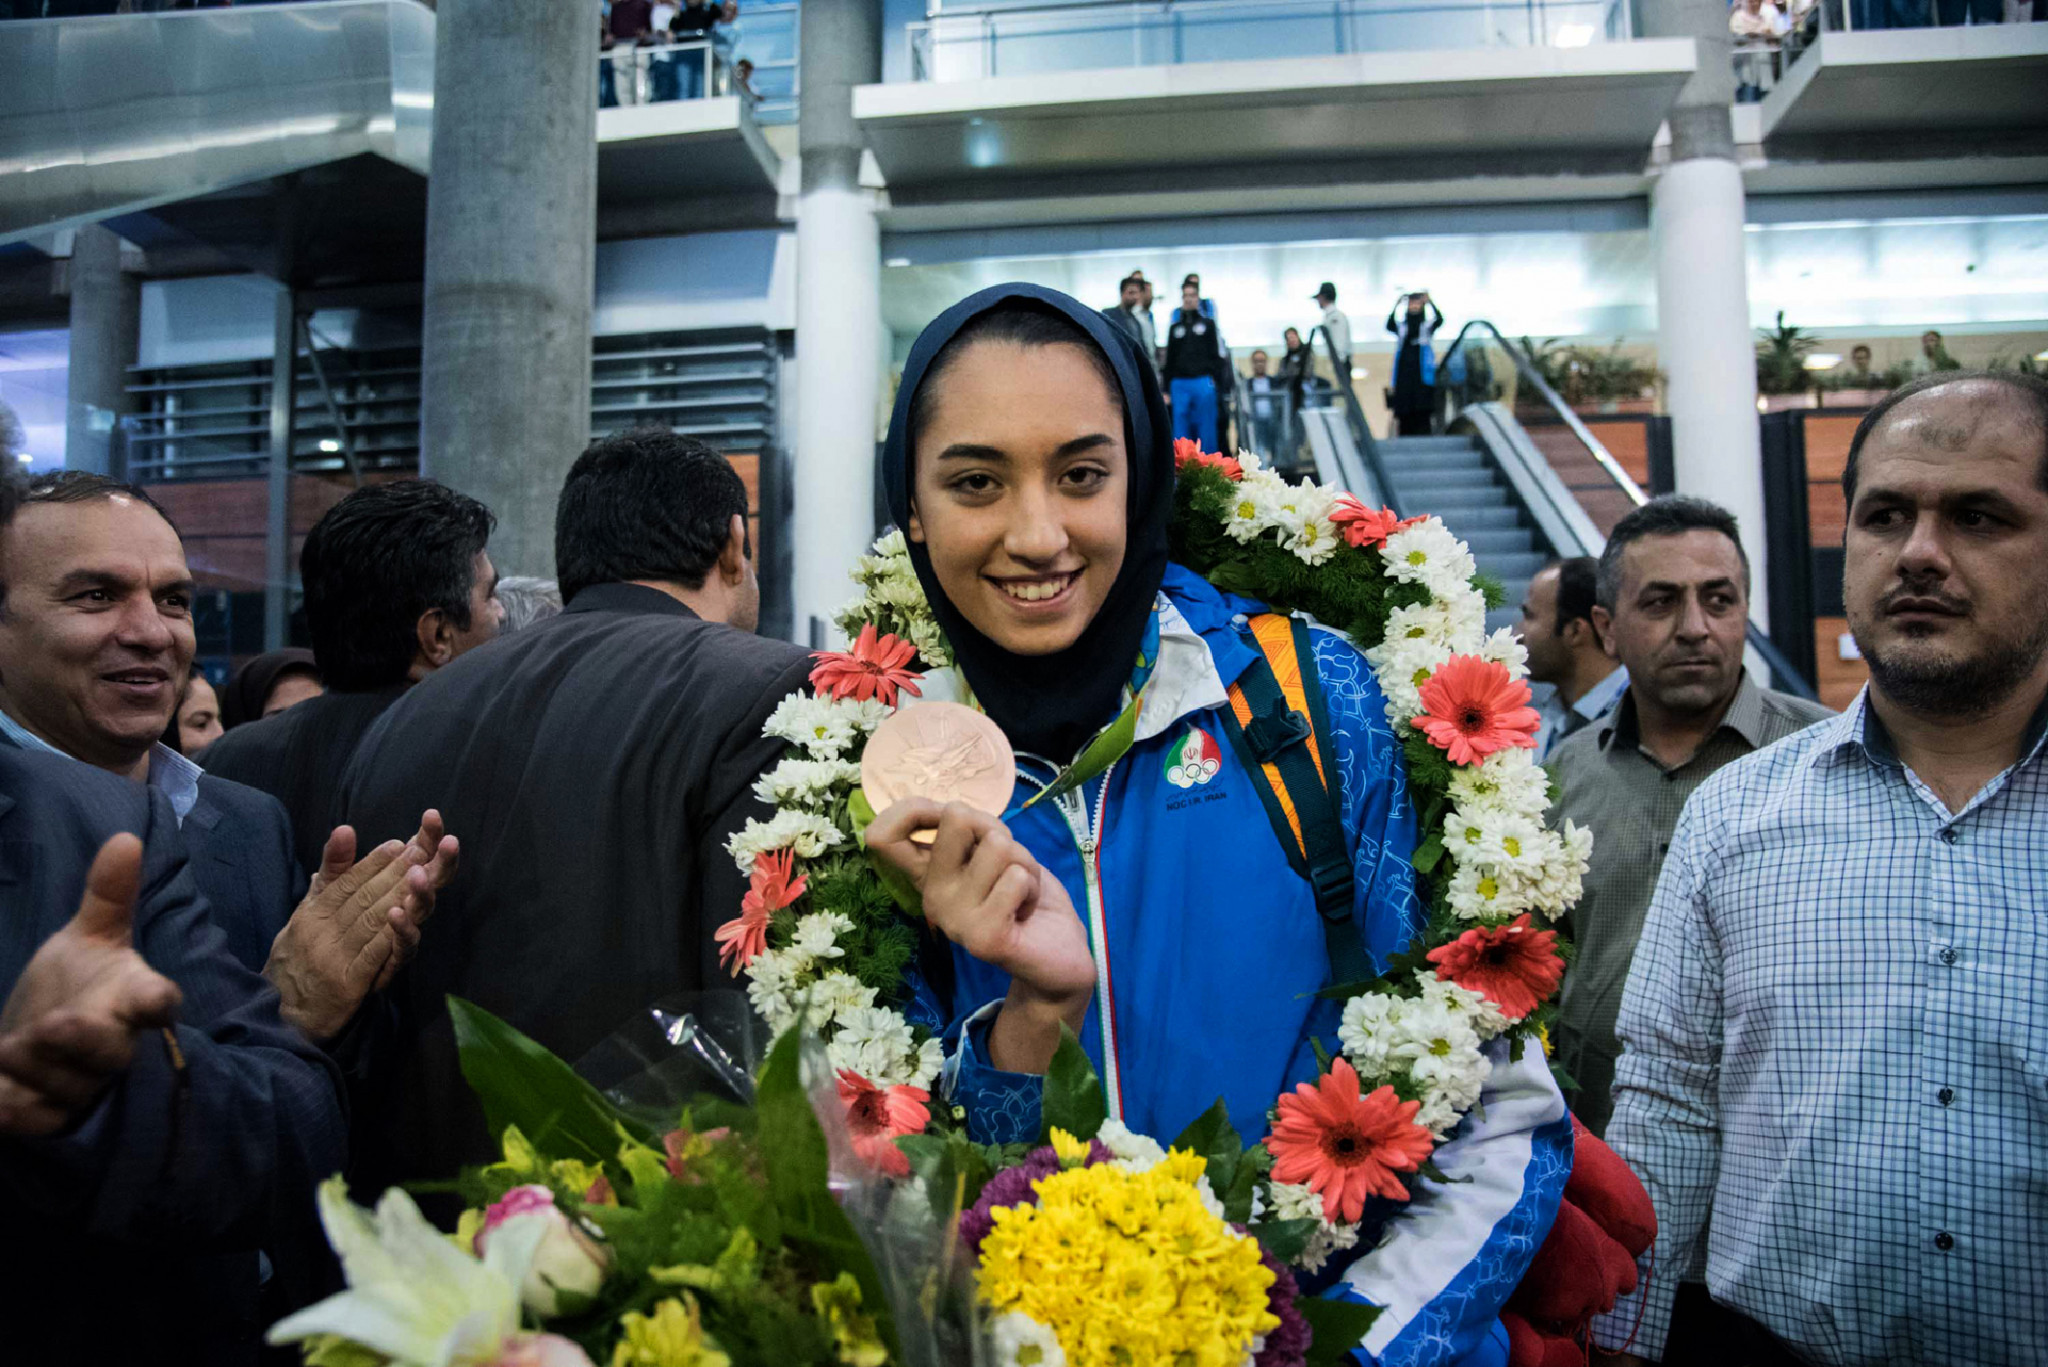 Kimia Alizadeh's history-making achievement resulted in much publicity ©Getty Images